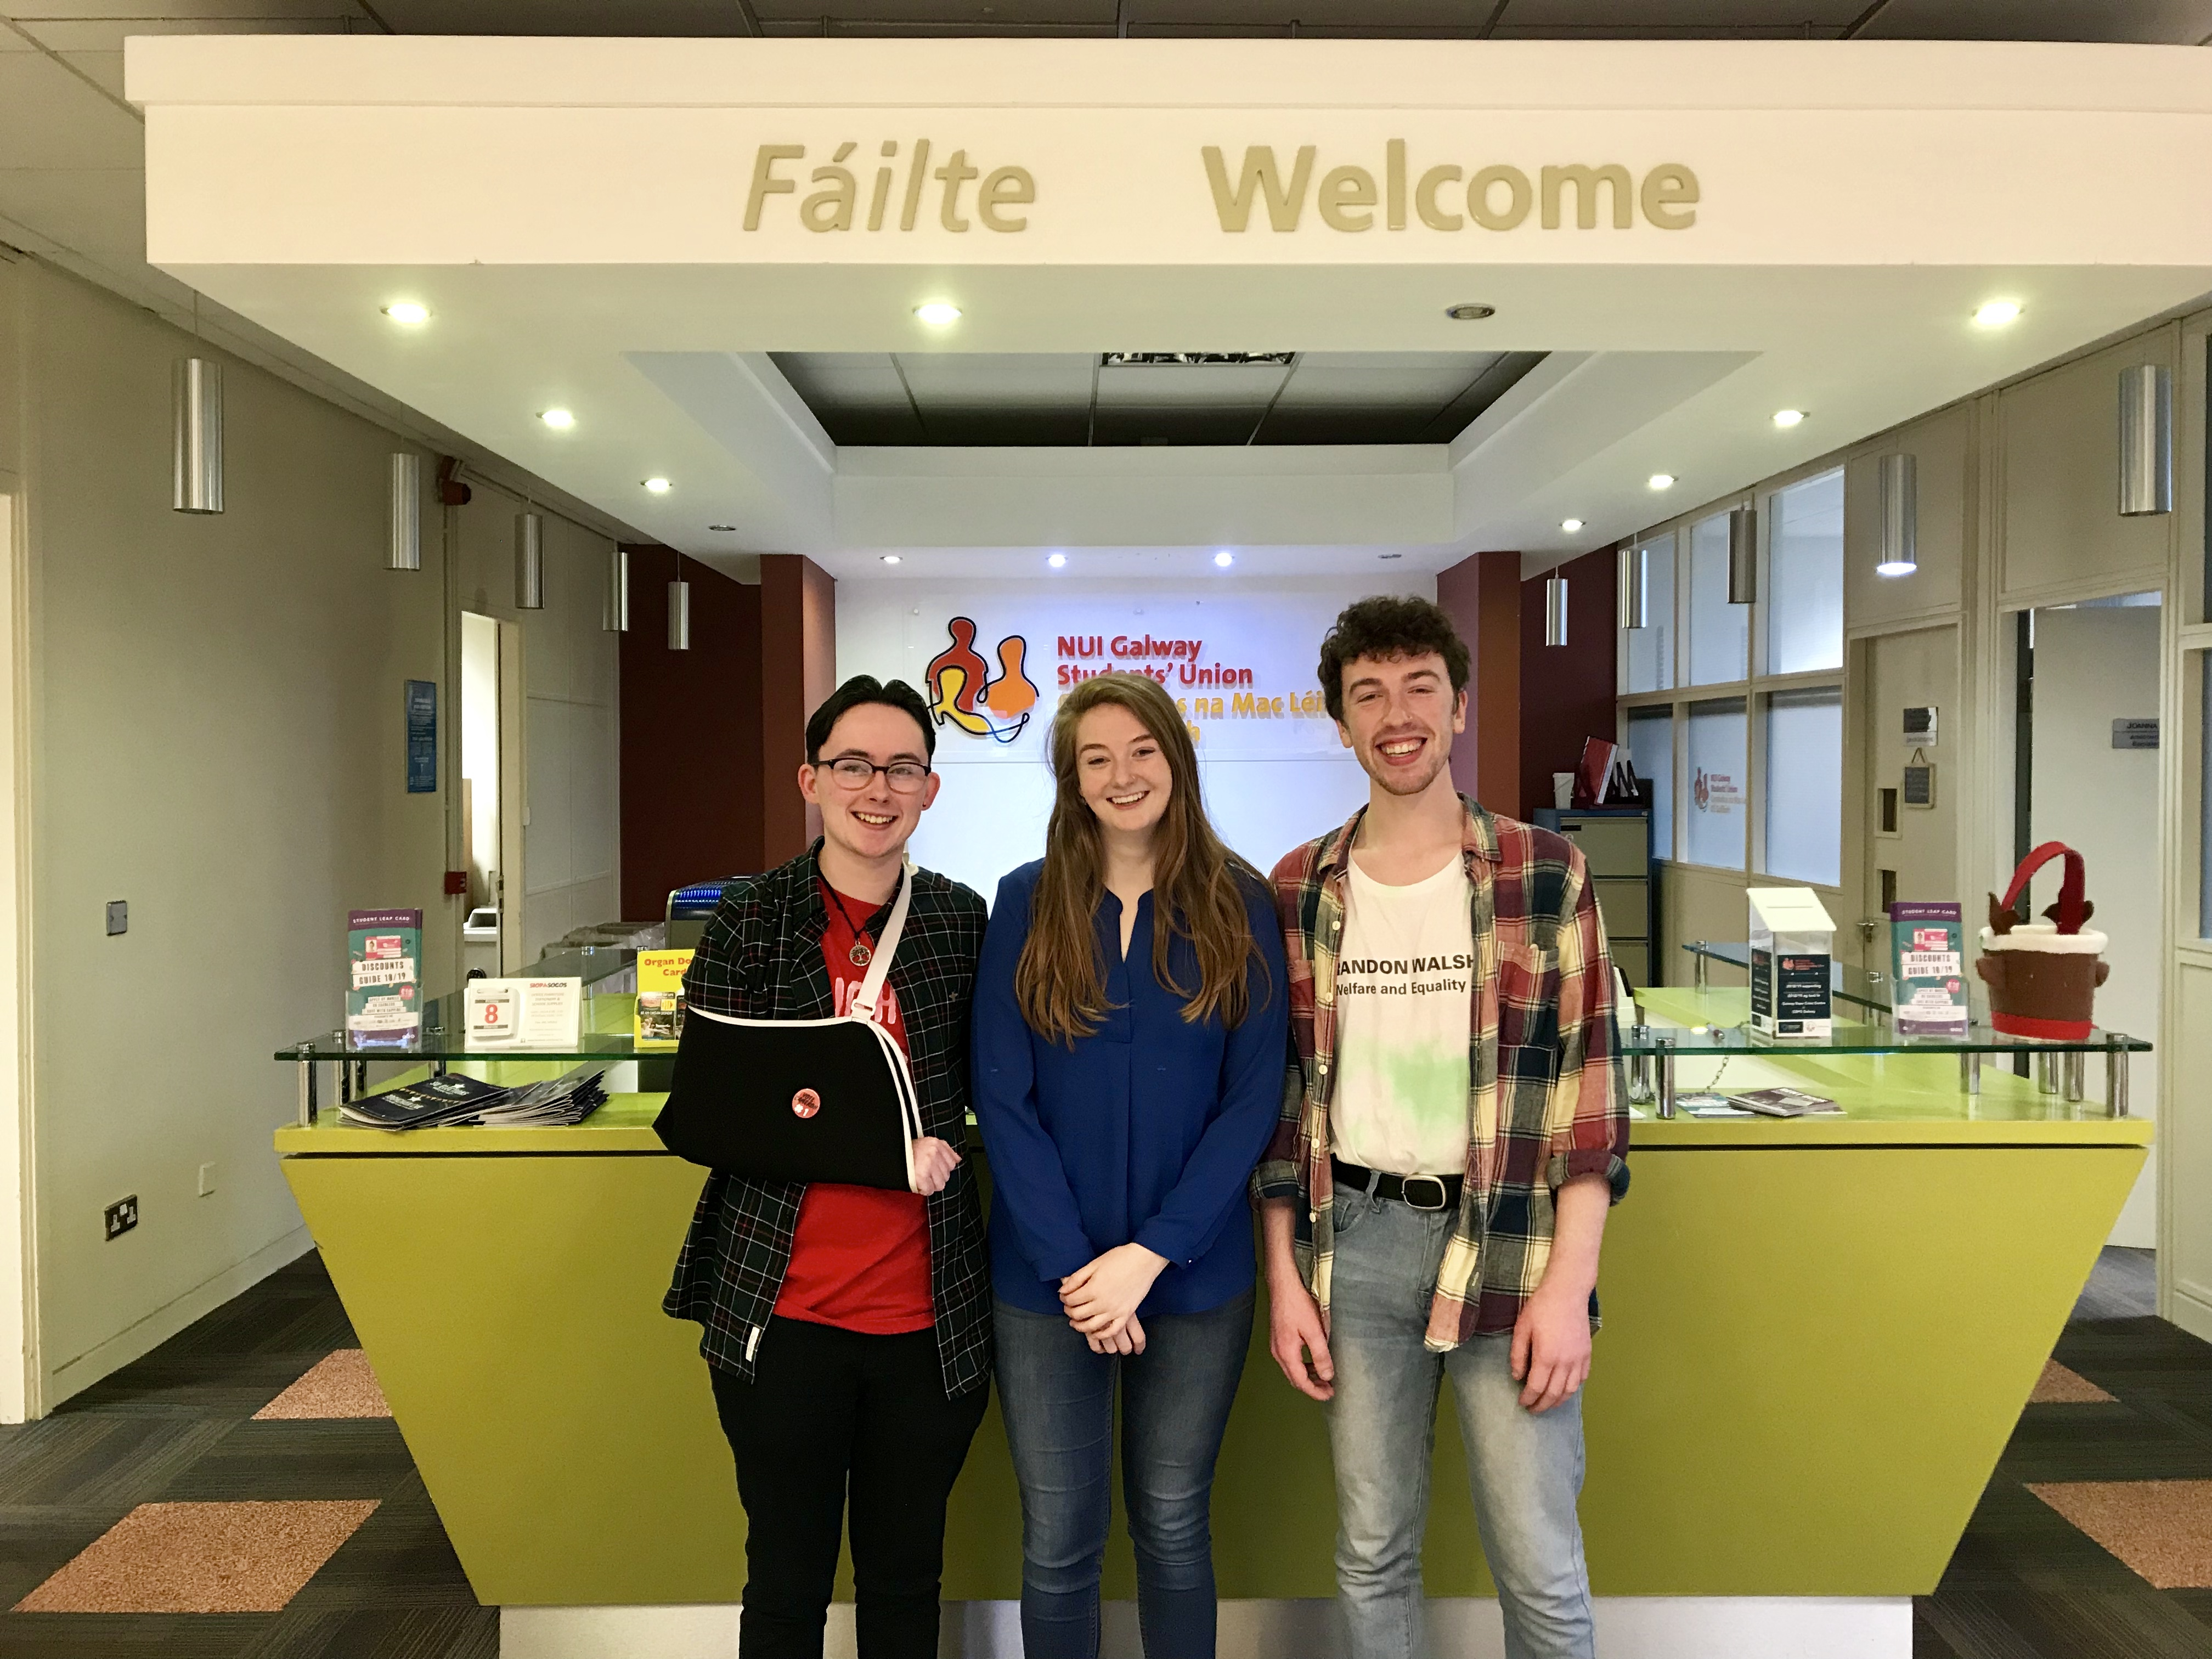 New Students' Union President takes office at NUI Galway